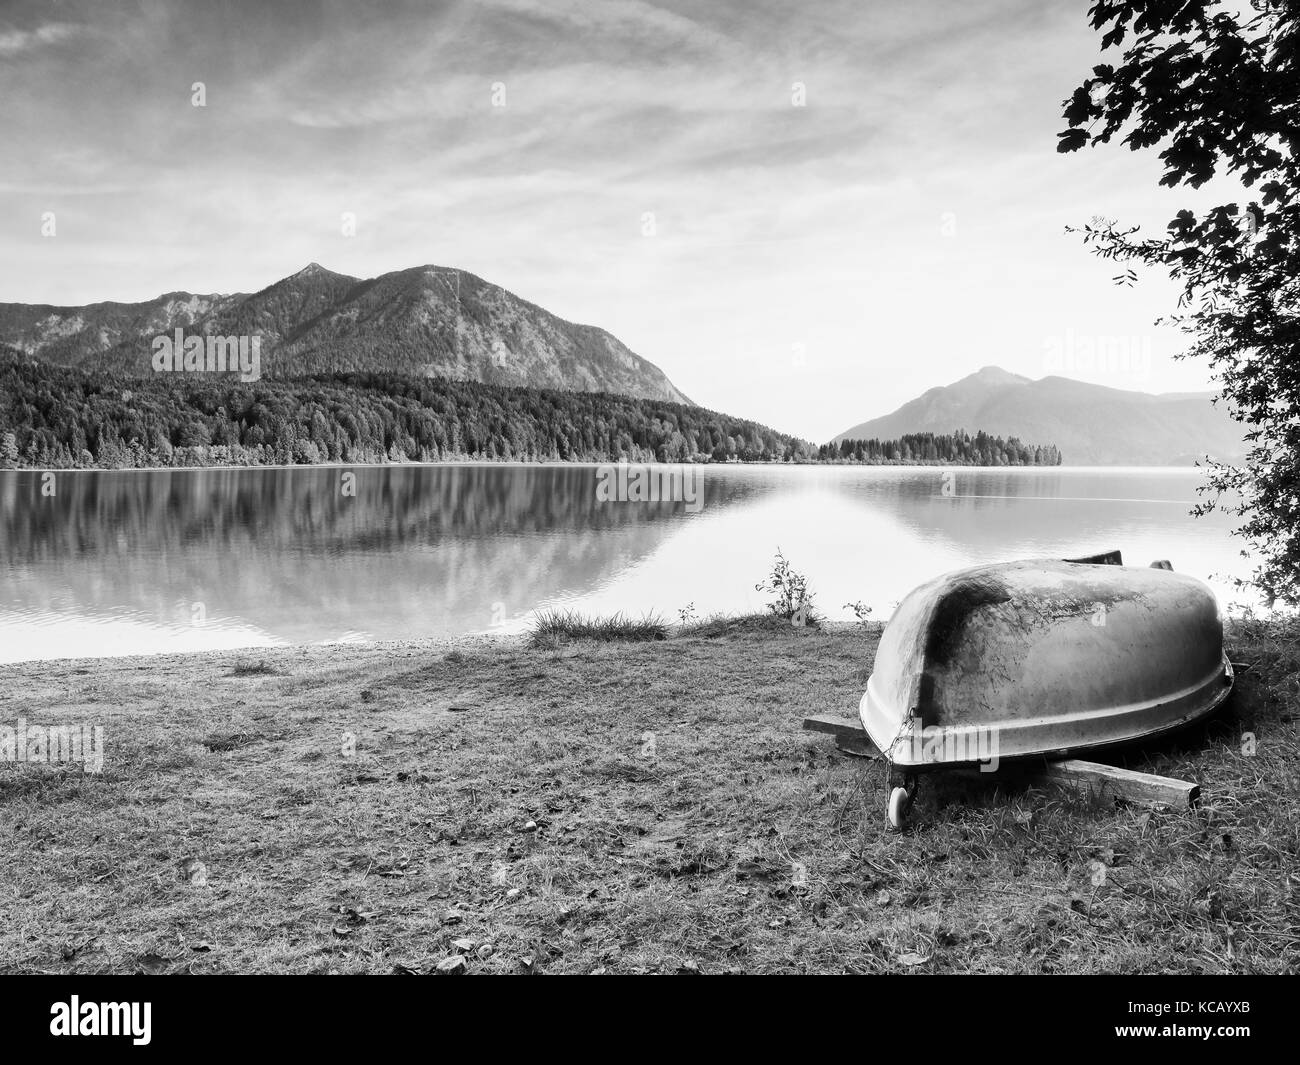 Upside down  fishing paddle boat on bank of Alps lake. Morning autumnal lake. Dramatic and picturesque scene. Mountains - Stock Image